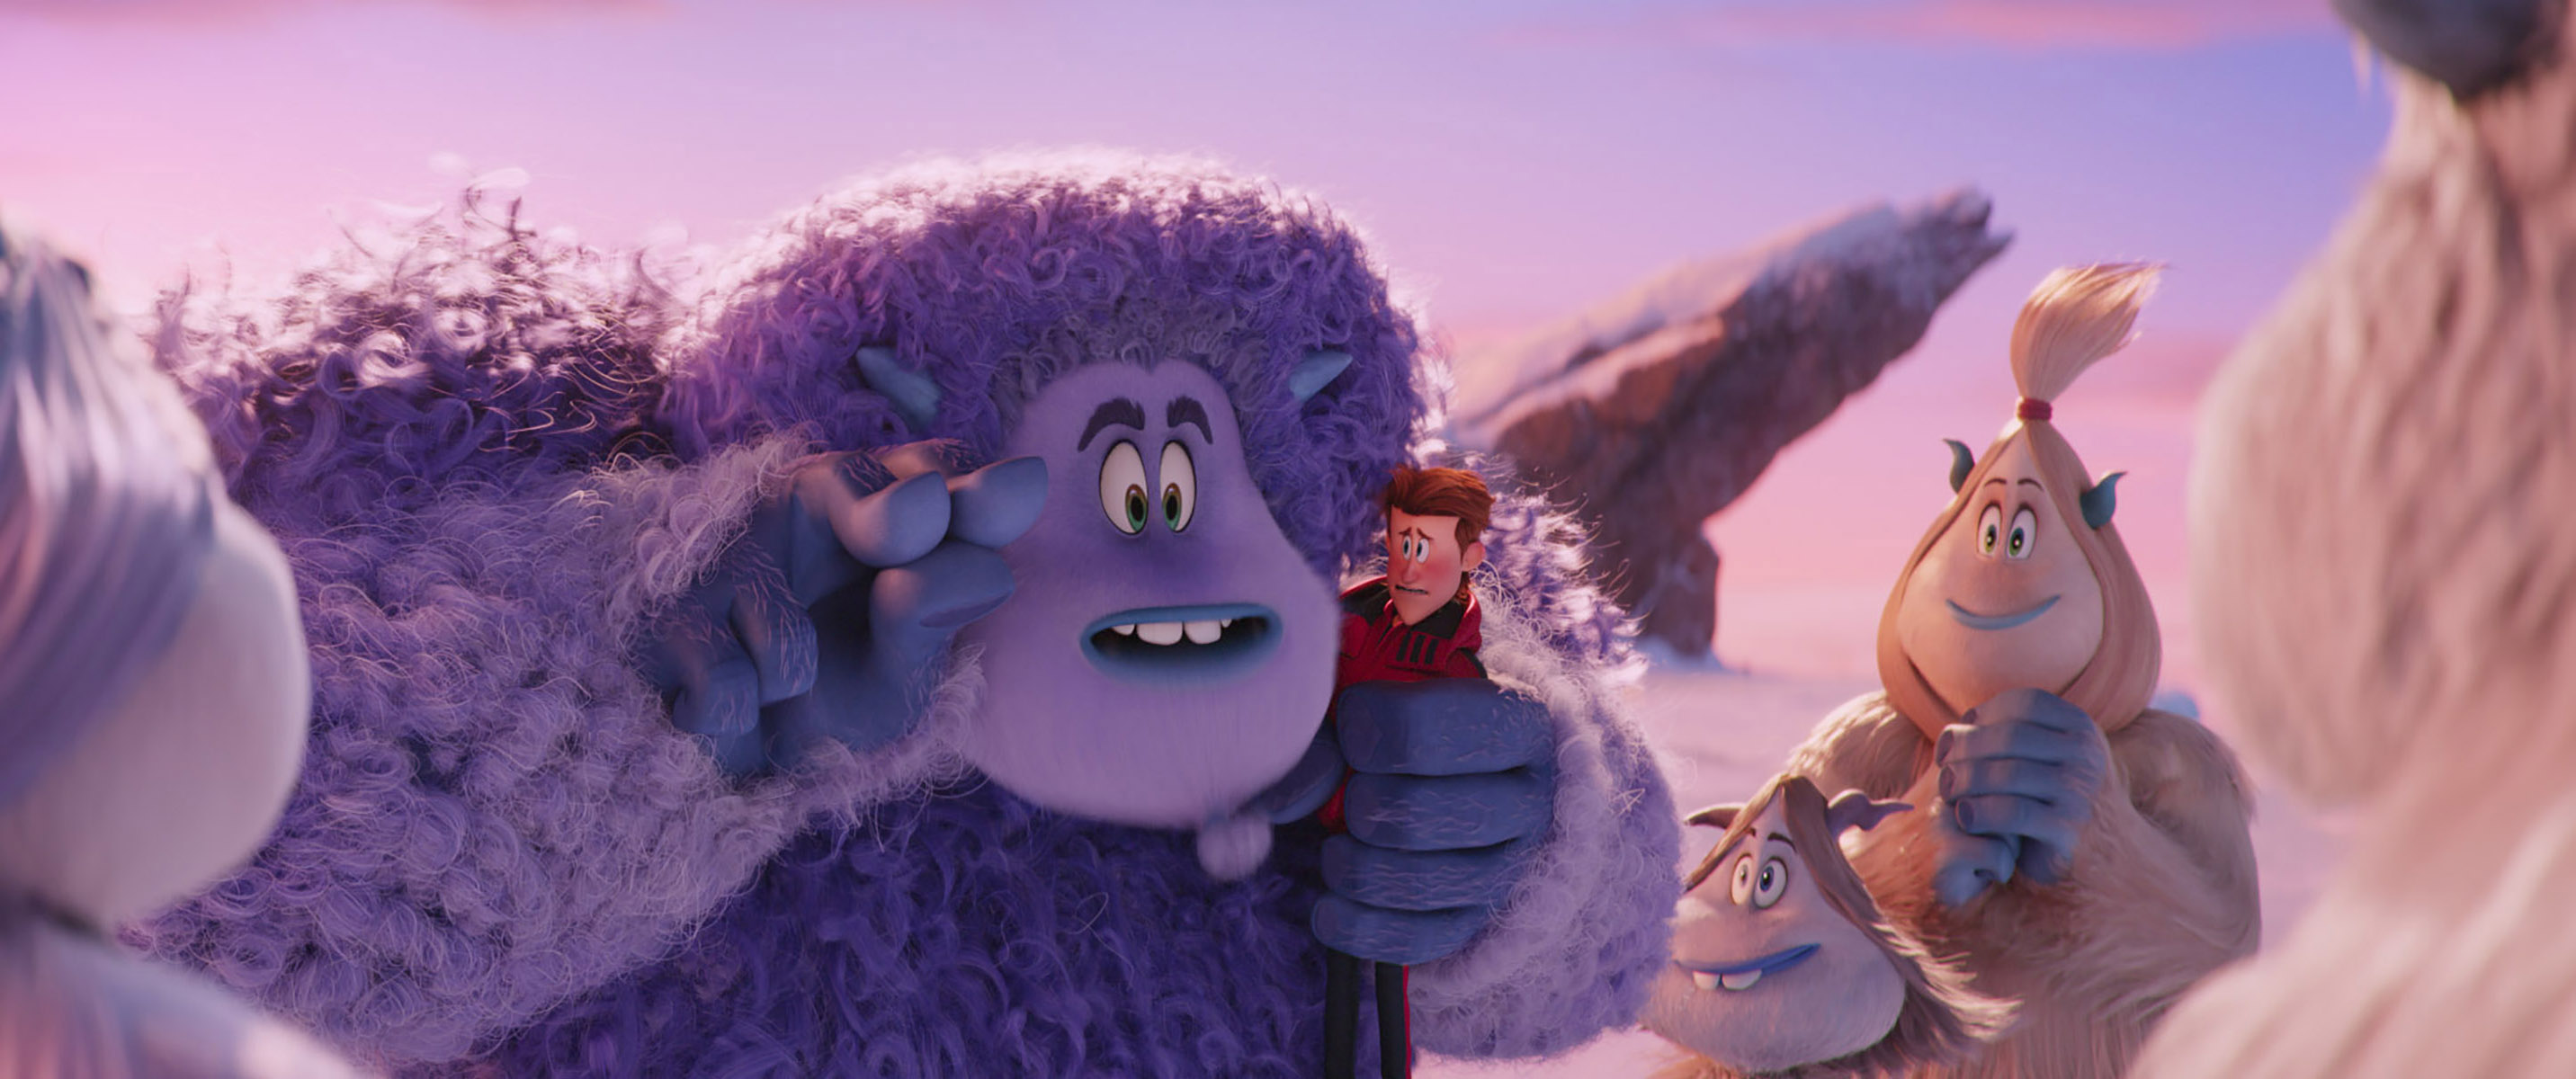 Smallfoot Gallery 6